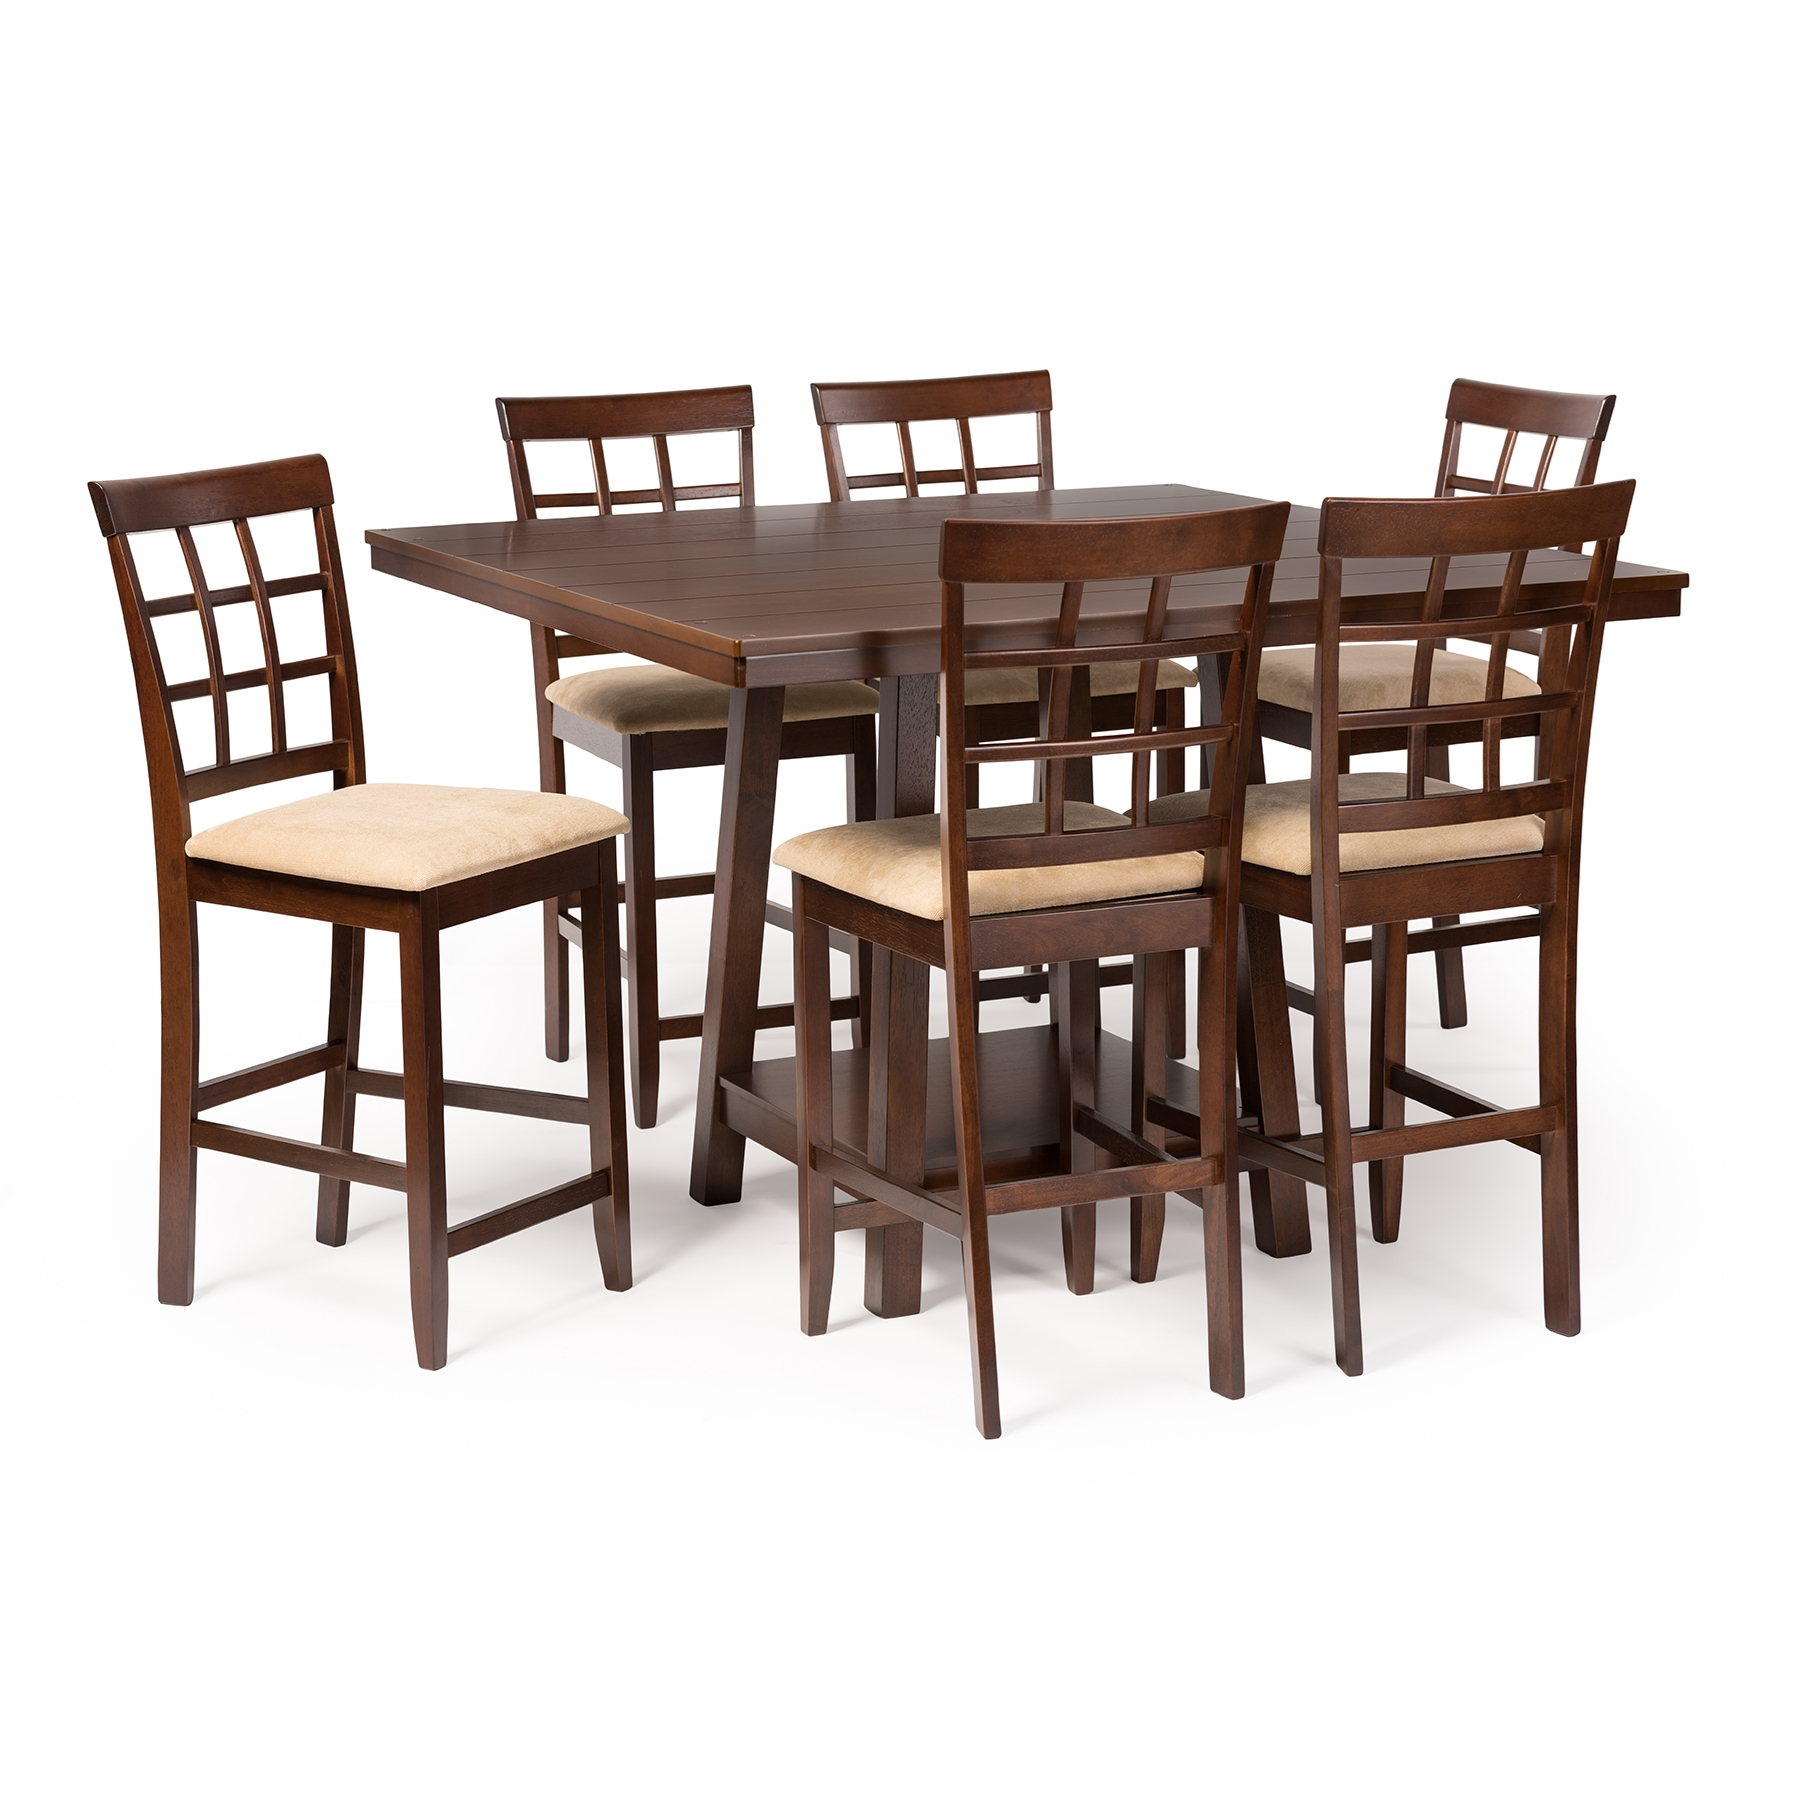 Baxton Studio Katelyn Modern Pub Table Set - 7 Piece Modern Dining Set  sc 1 st  Baxton Studio Outlet & Baxton Studio Katelyn Modern Pub Table Set - 7 Piece Modern Dining ...